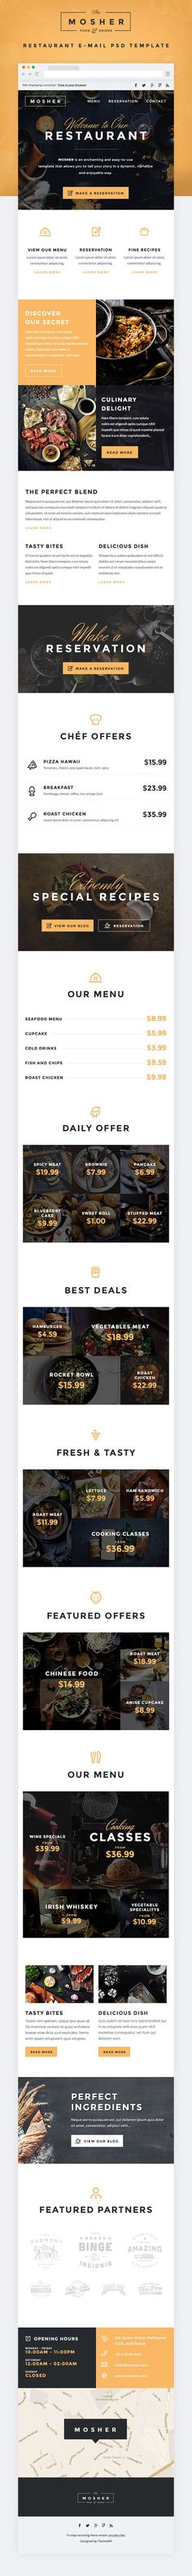 Mosher - Restaurant E-newsletter Template